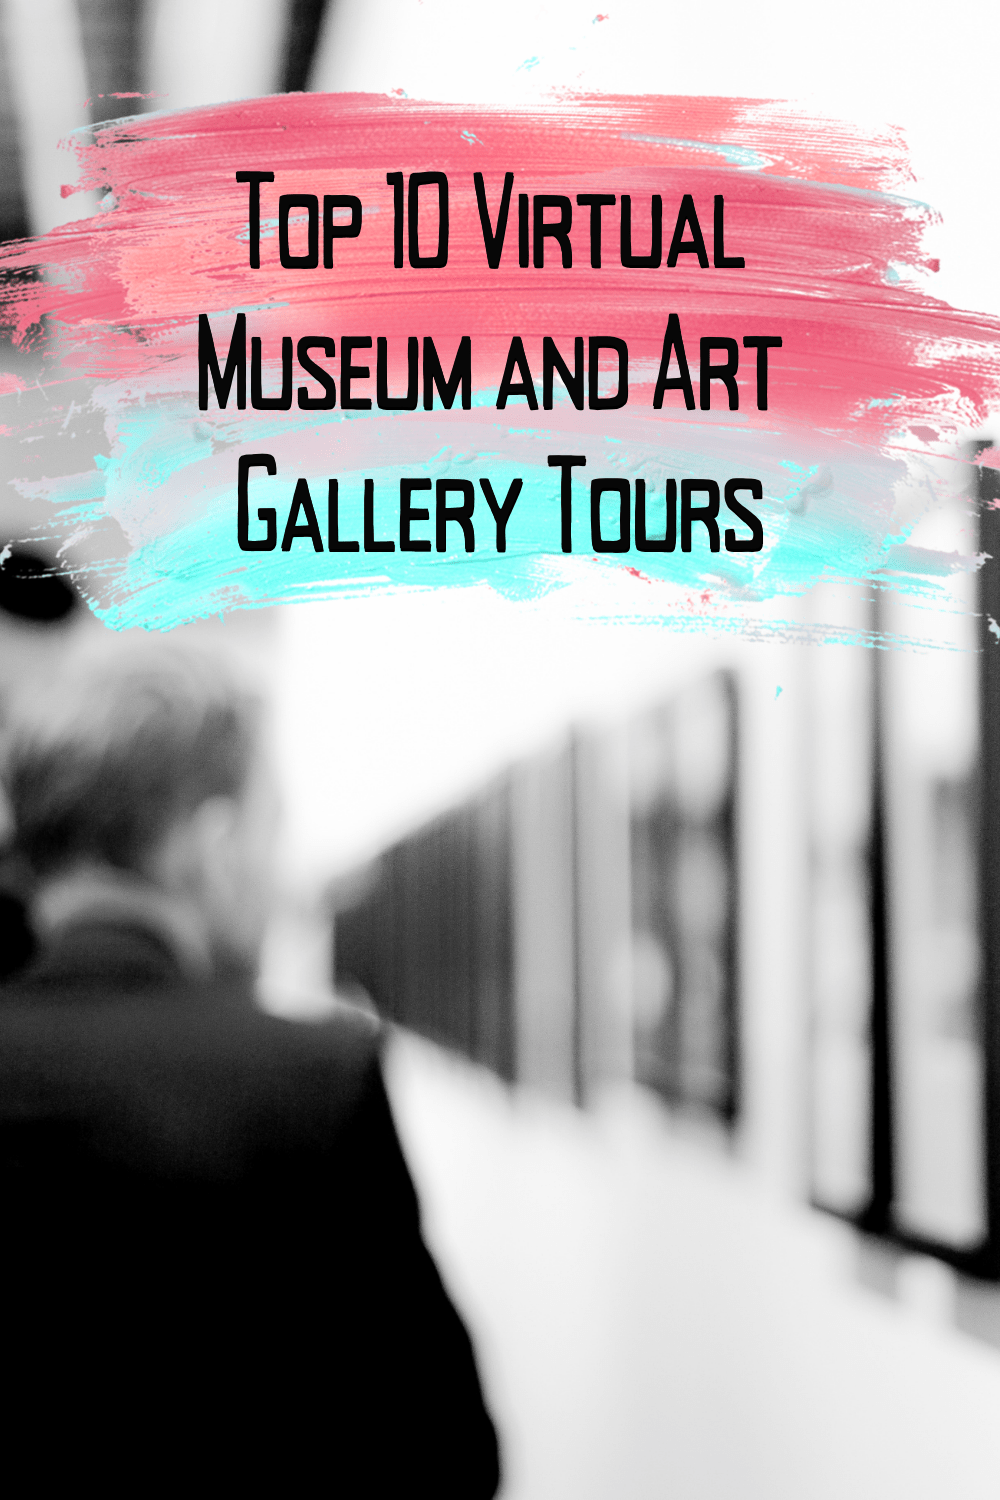 Top 10 Virtual Museum and Art Gallery Tours